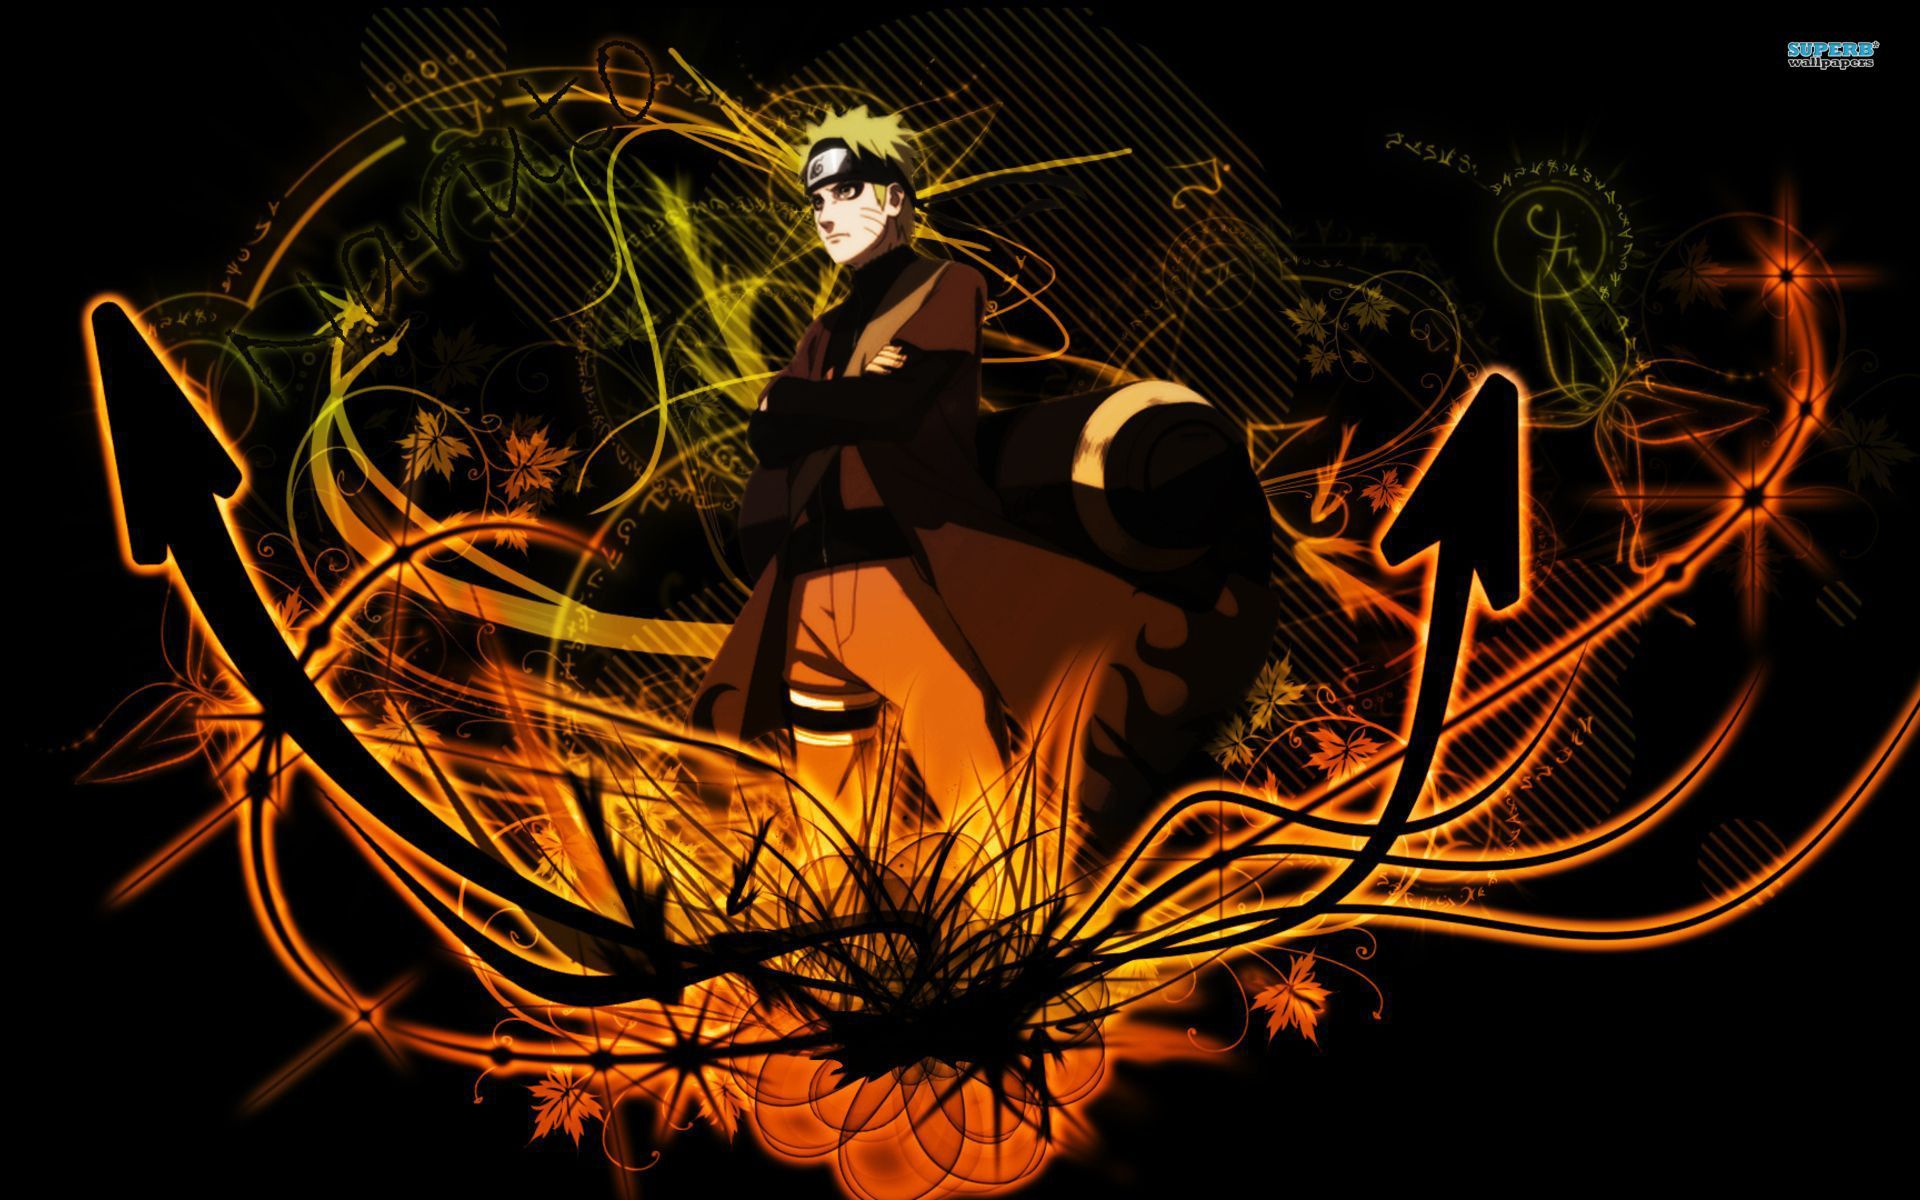 Fantastic Wallpaper Naruto Windows 10 - Download-Wallpapers-Naruto-Shippuden-004  Gallery.jpg